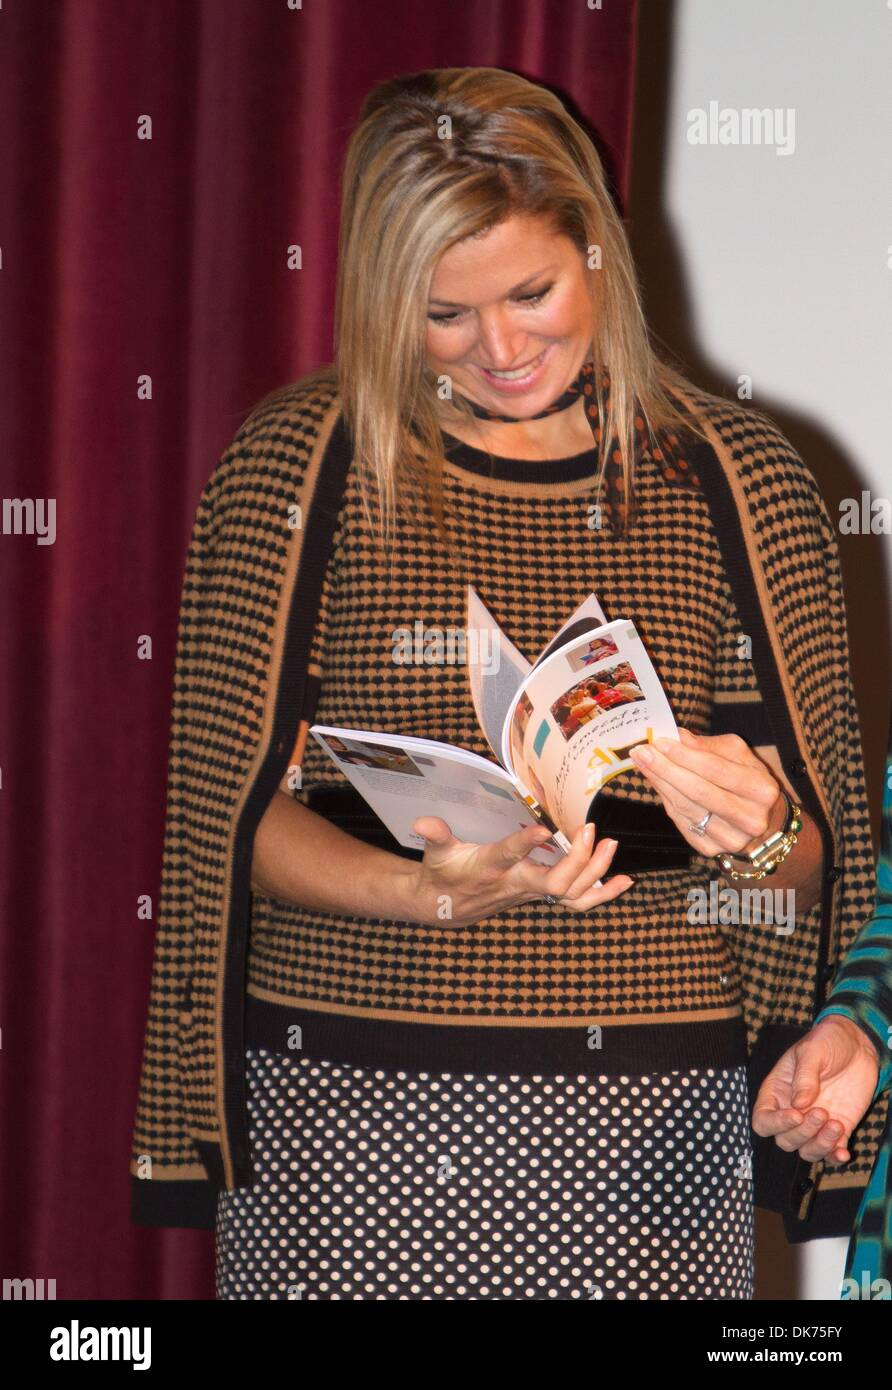 Leiden, The Netherlands. 03rd Dec, 2013. Queen Maxima of The Netherlands attends the 10th anniversary symposium of the Autism Cafe at the Volkshuis in Leiden, The Netherlands, 03 December 2013. The Queen receives the first copy of the book 'Autism Cafe, the power of parents'. The Autism cafe offers parents of children with autism information and help from experts and an opportunity to meet other parents. Photo: Albert Philip Van Der Werf/dpa - -/dpa/Alamy Live News - Stock Image